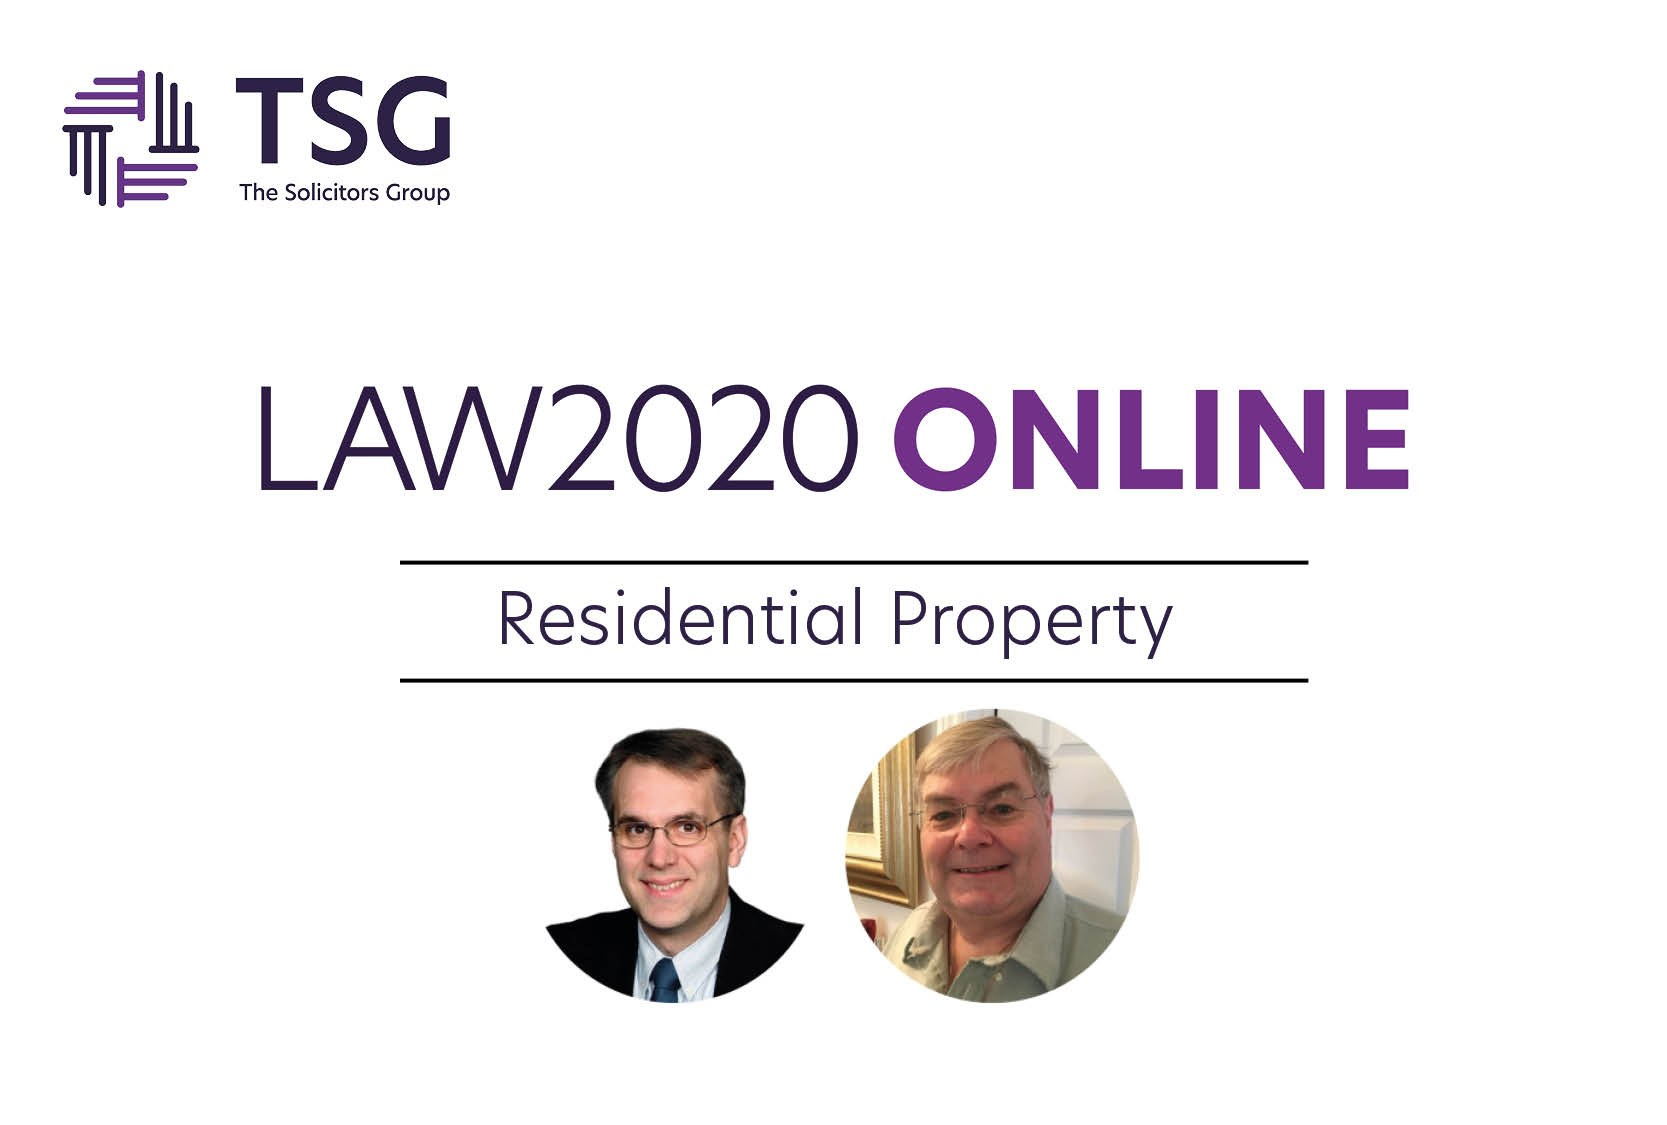 LAW2020 Online Residential Property